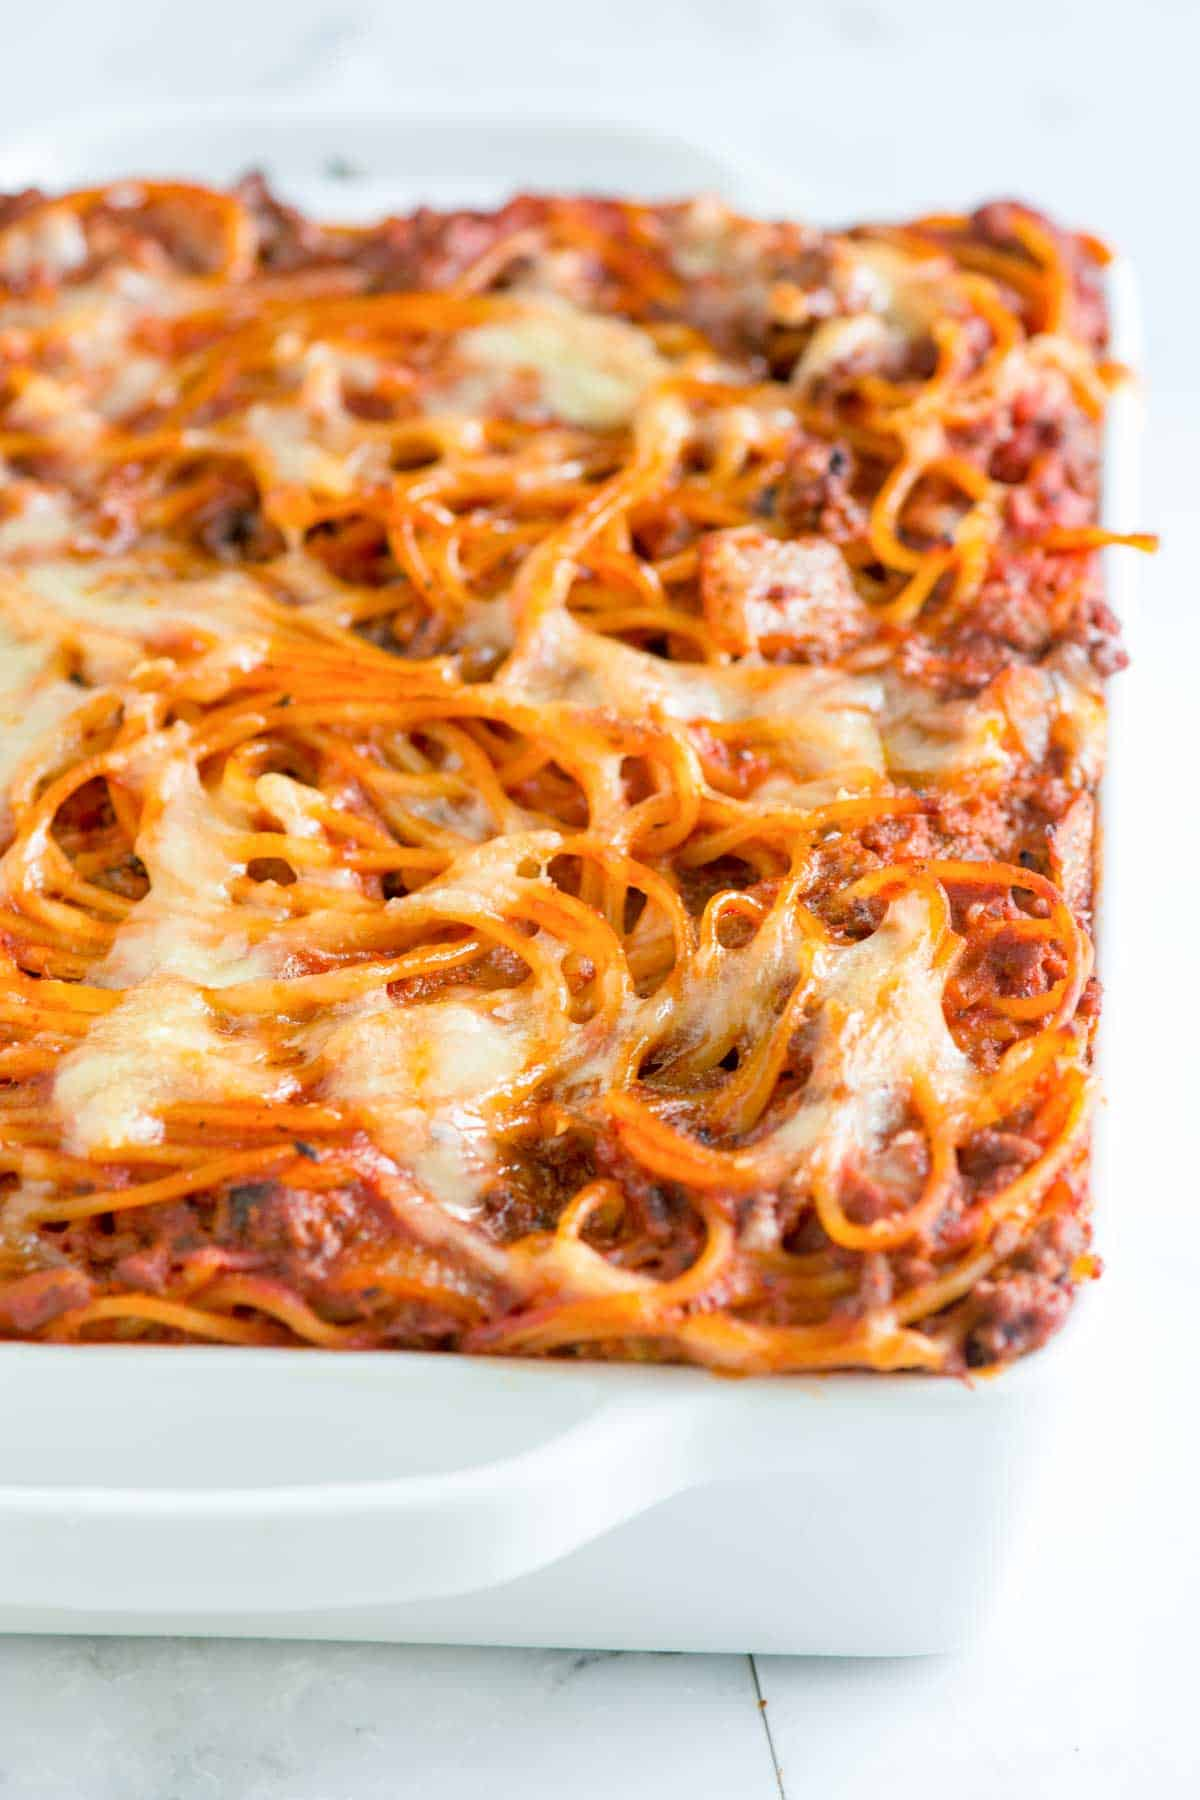 How to Make the Best Baked Spaghetti